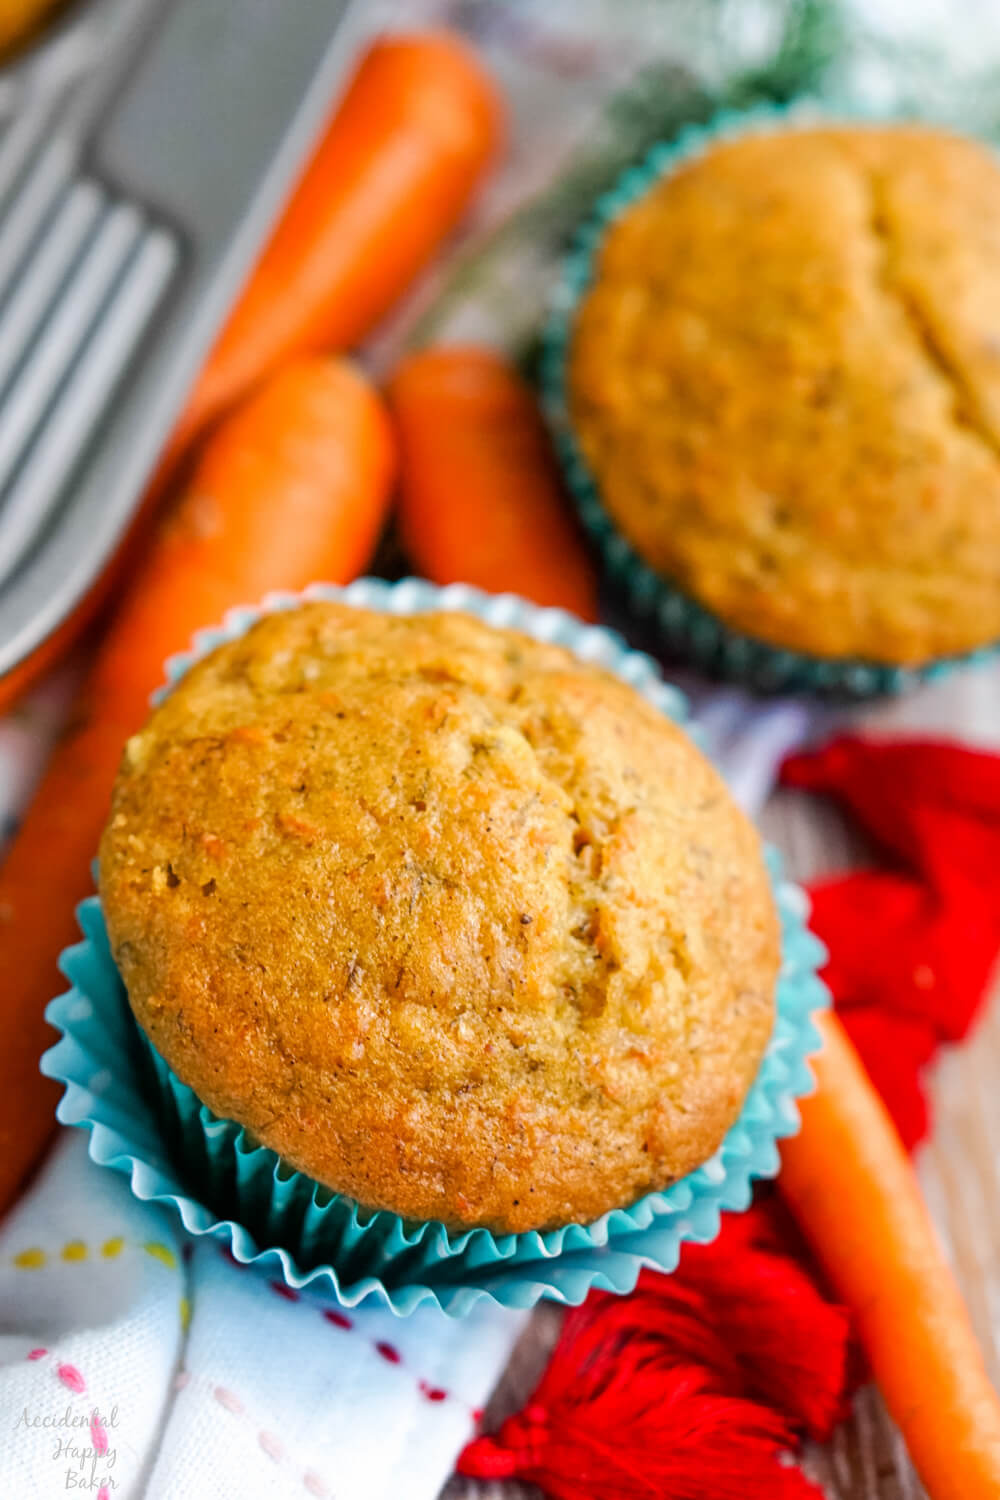 carrot banana muffin in cupcake liner with carrot beside it